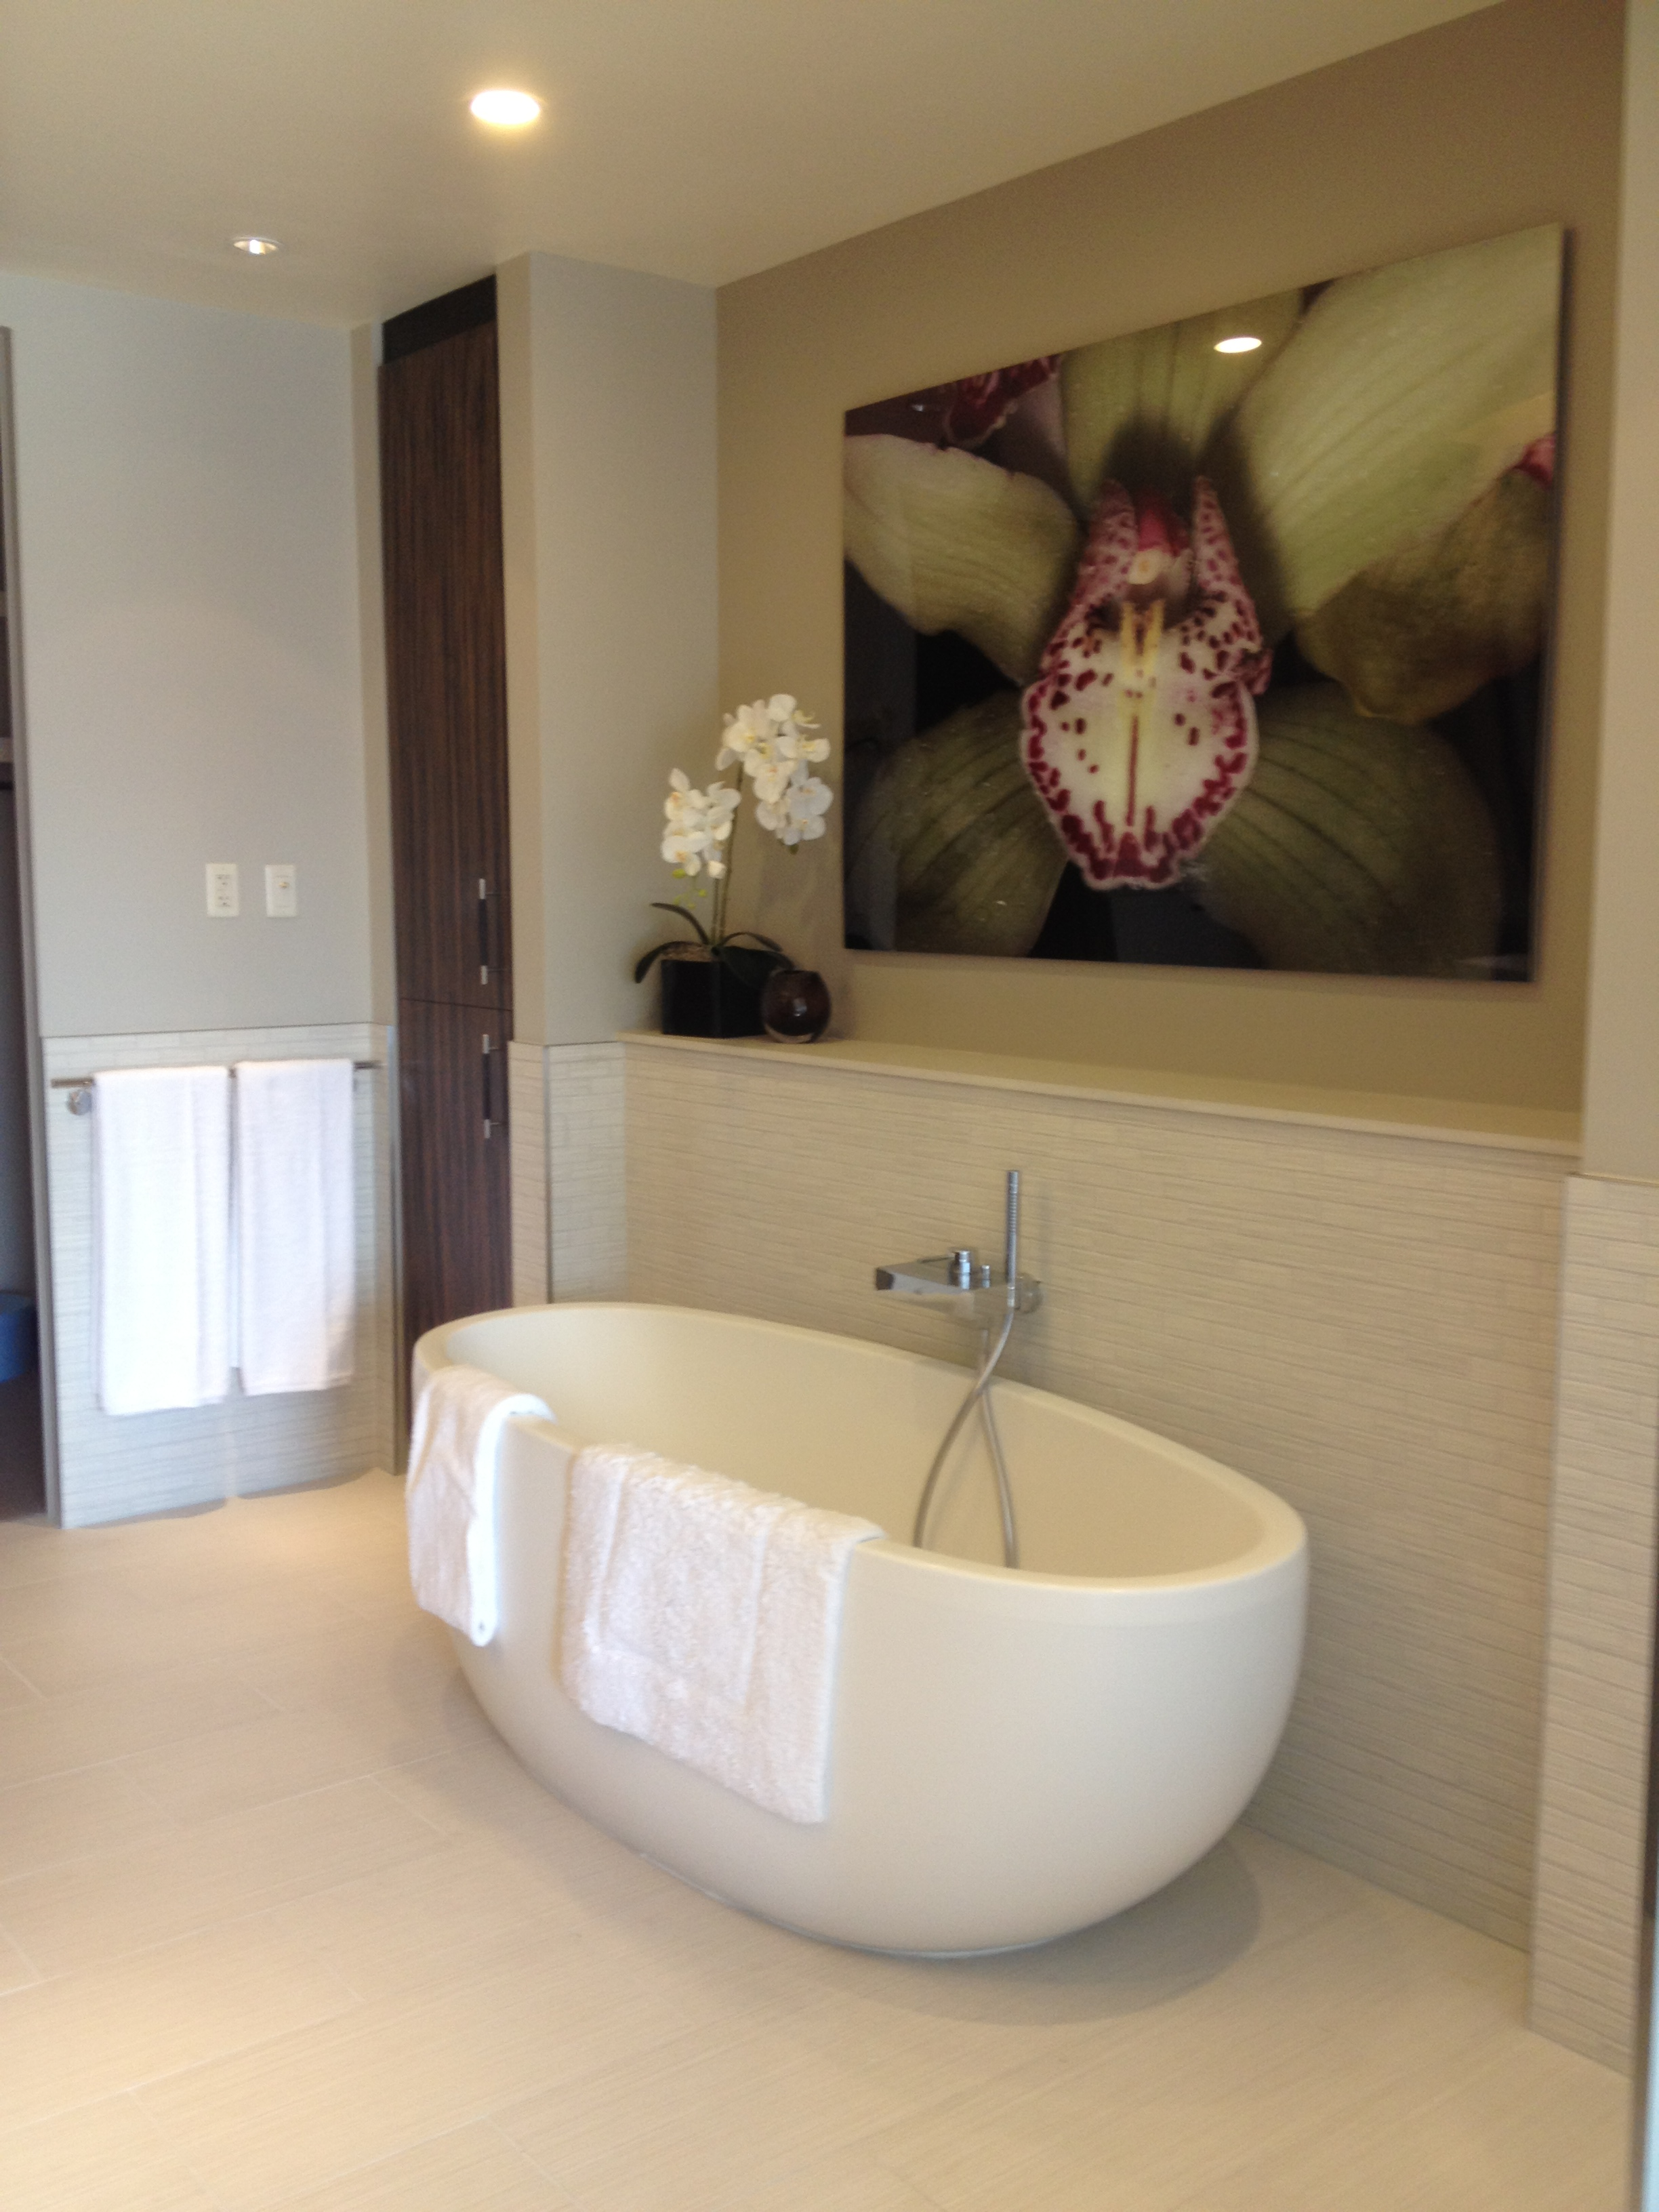 Mandarin Condos Las Vegas - The Mandarin Oriental 1 bedroom Bath tub